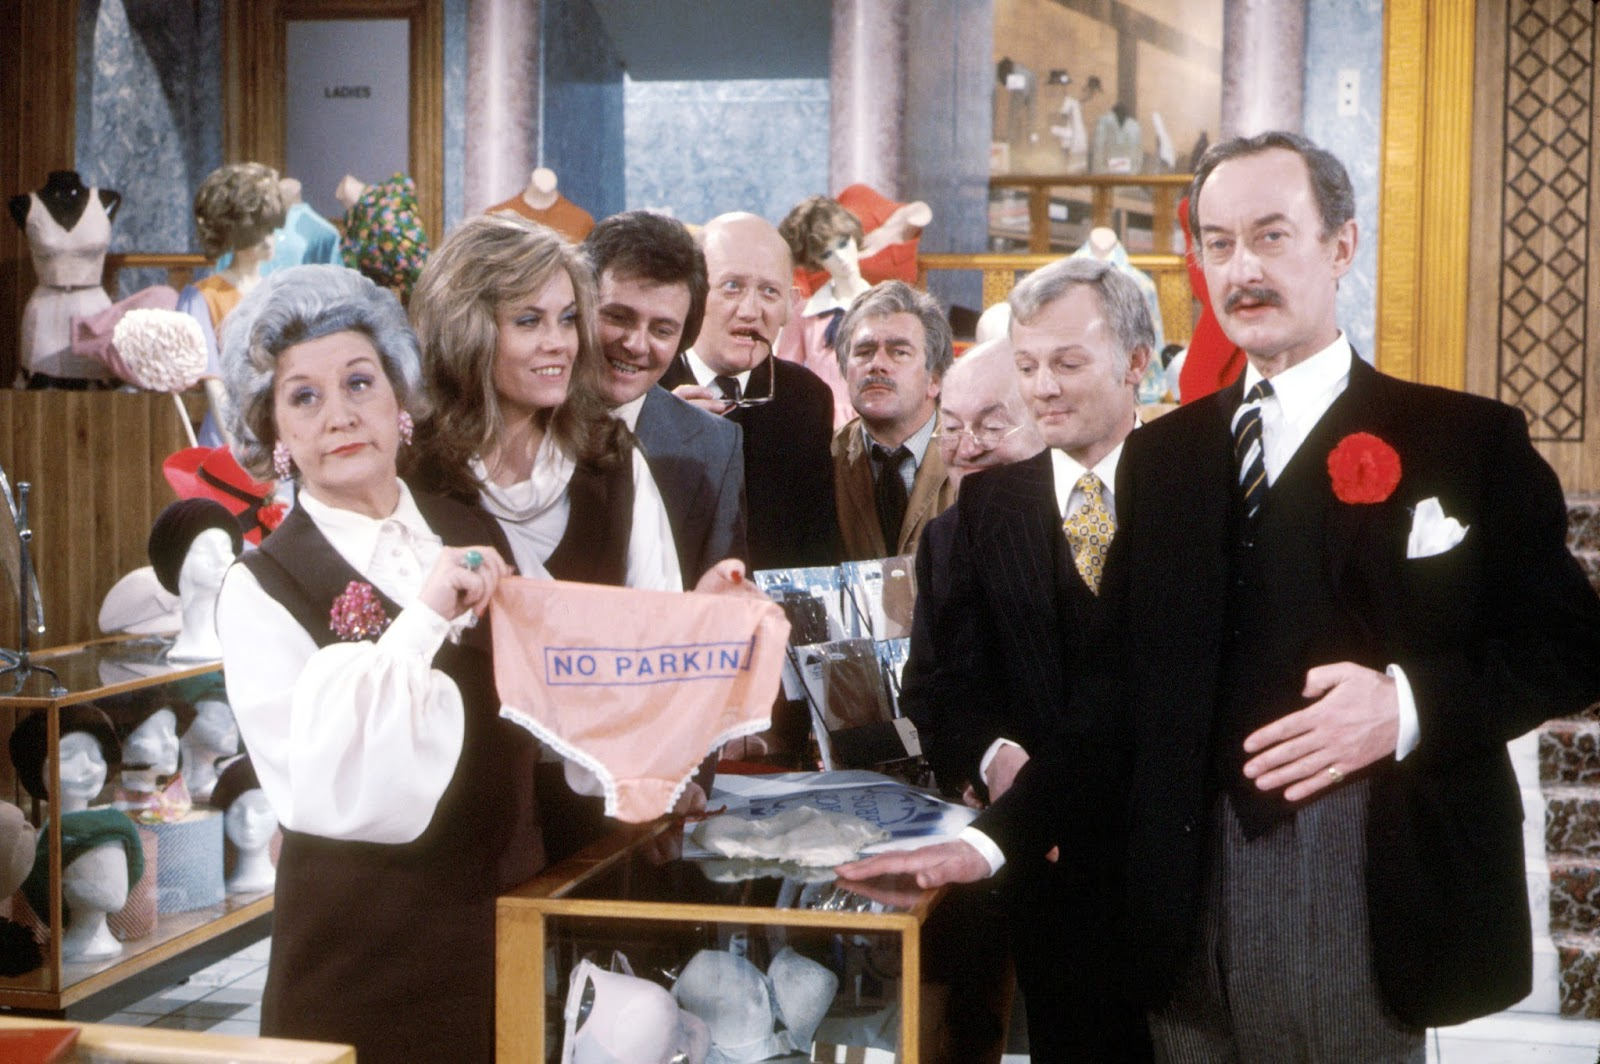 Are You Being Served Image of Full Cast